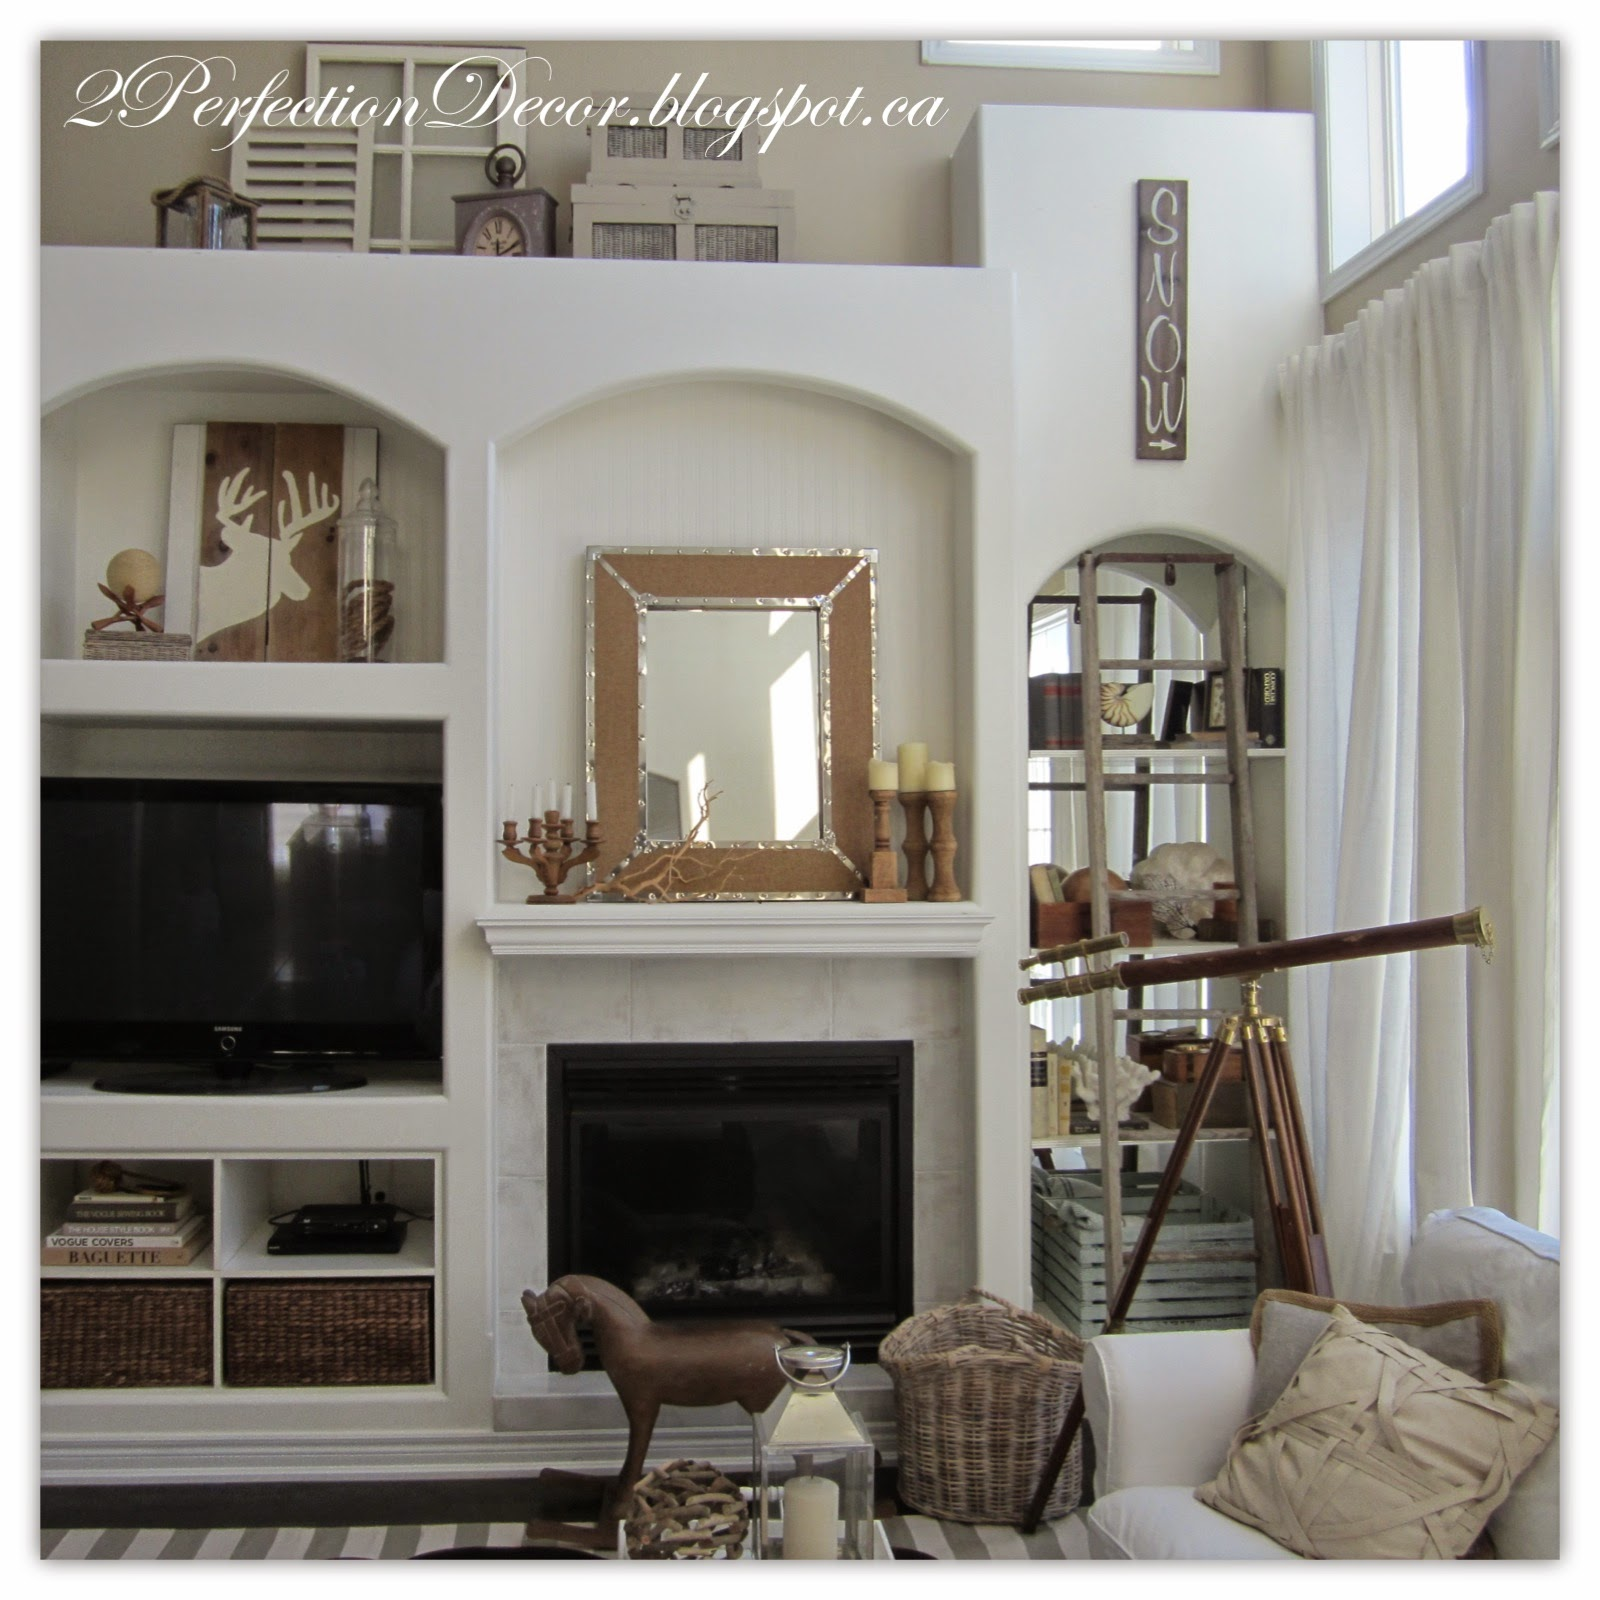 2Perfection Decor: Neutral Winter Decorating